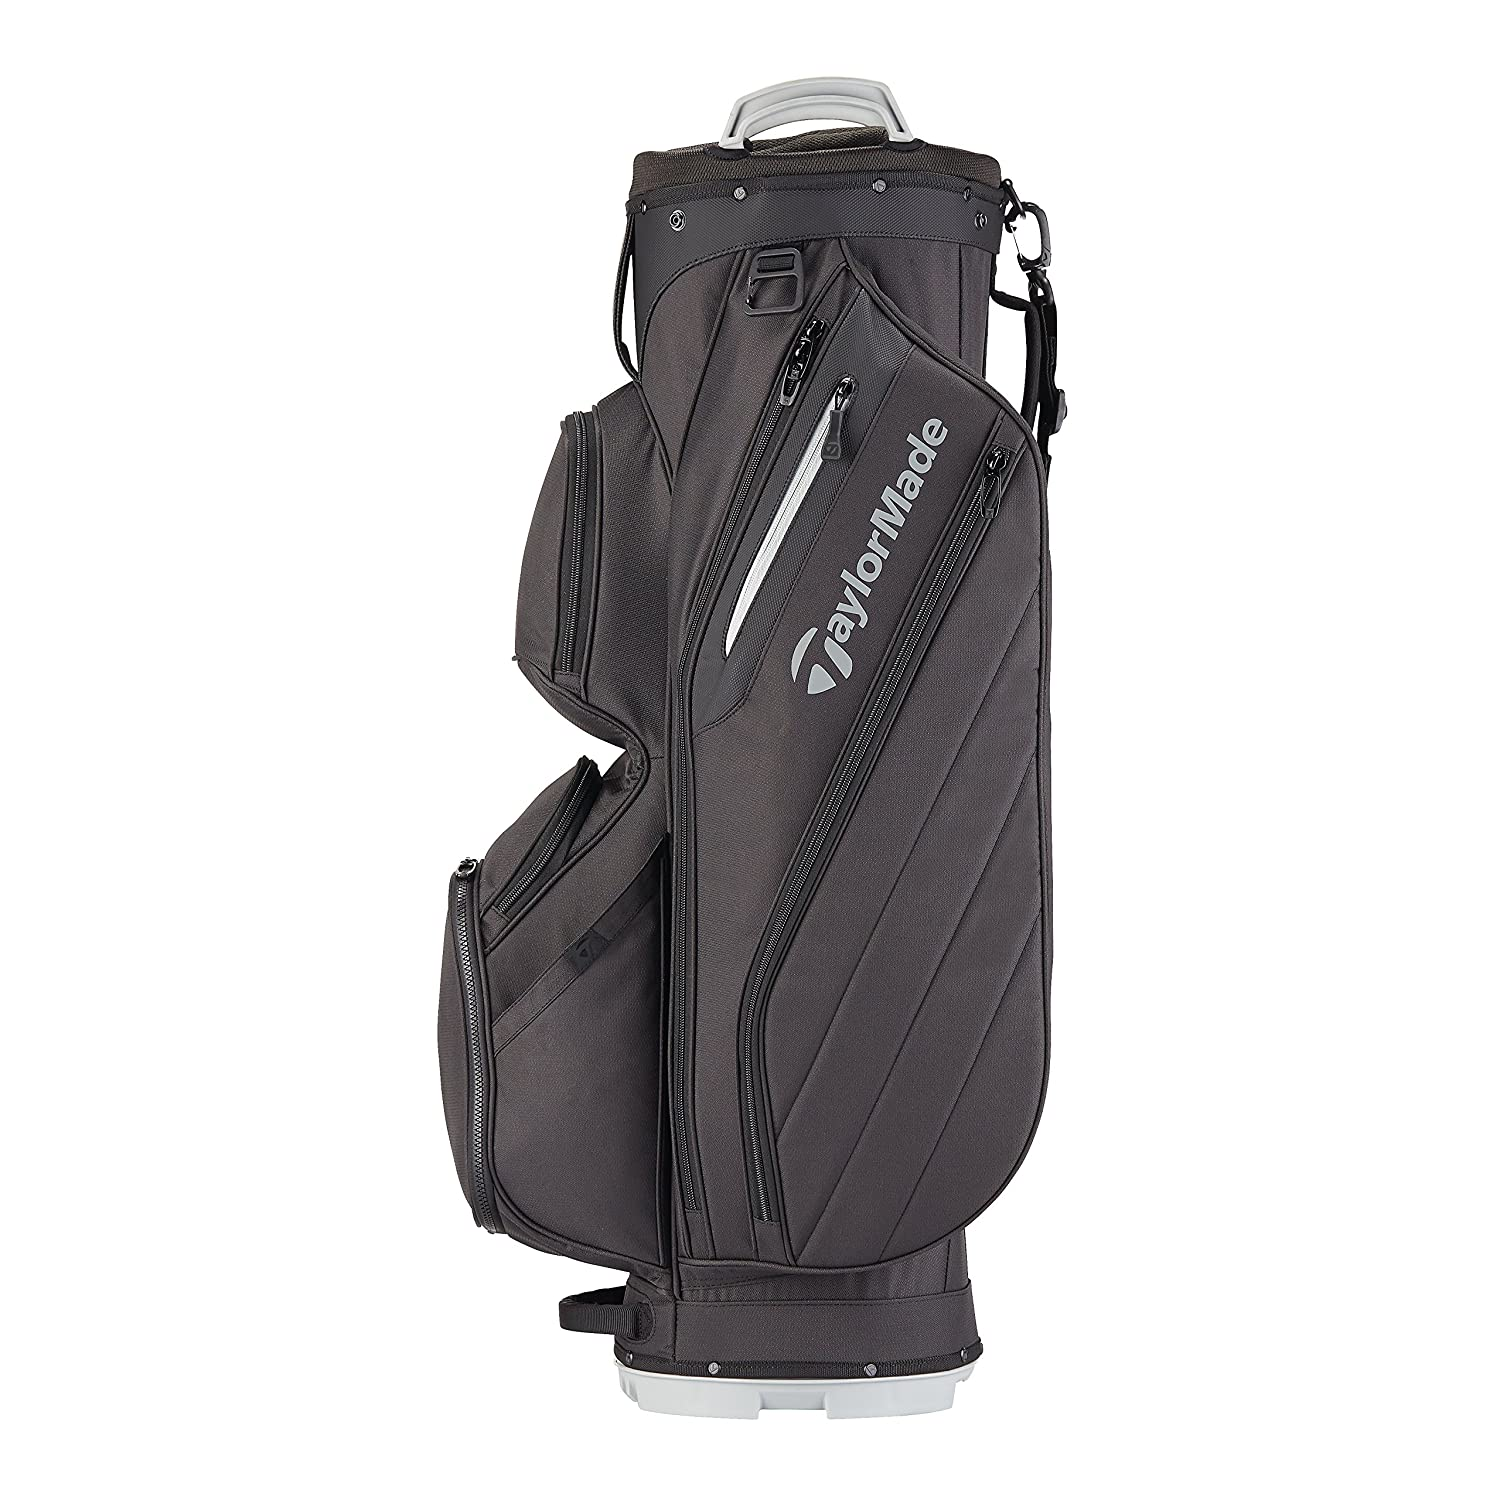 0a7474fe48a7 Amazon.com   TaylorMade Cart Lite 2018 Bag (Black) (Black)   Sports    Outdoors